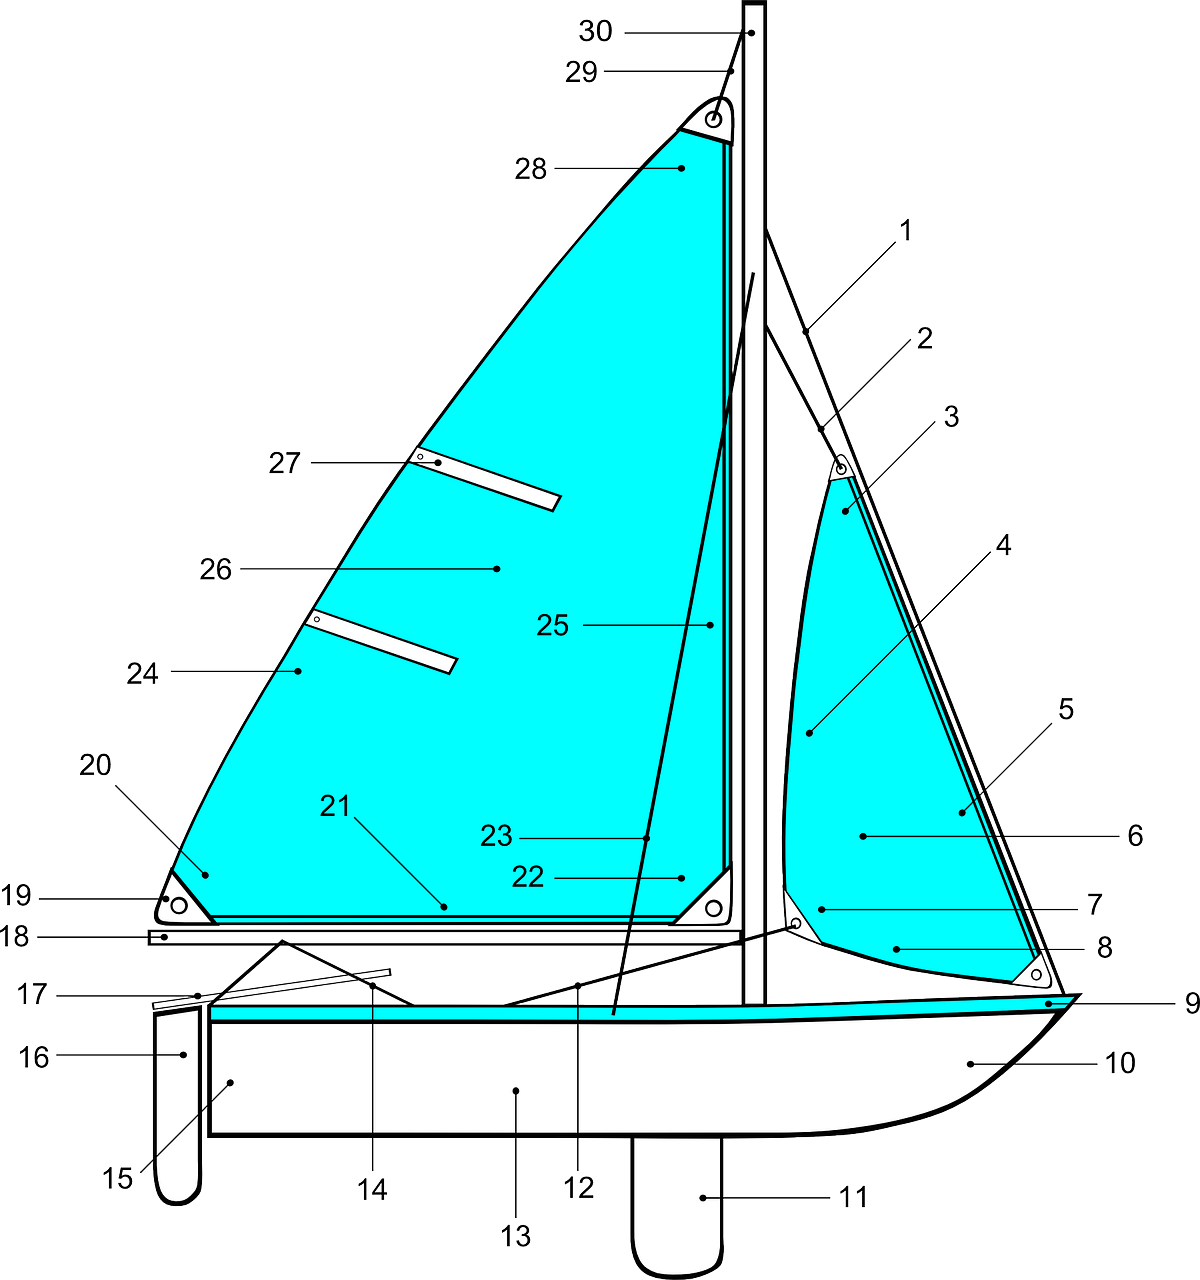 hight resolution of boat diagram sailboat sailing points boat boat diagram sailboat sailing points boat